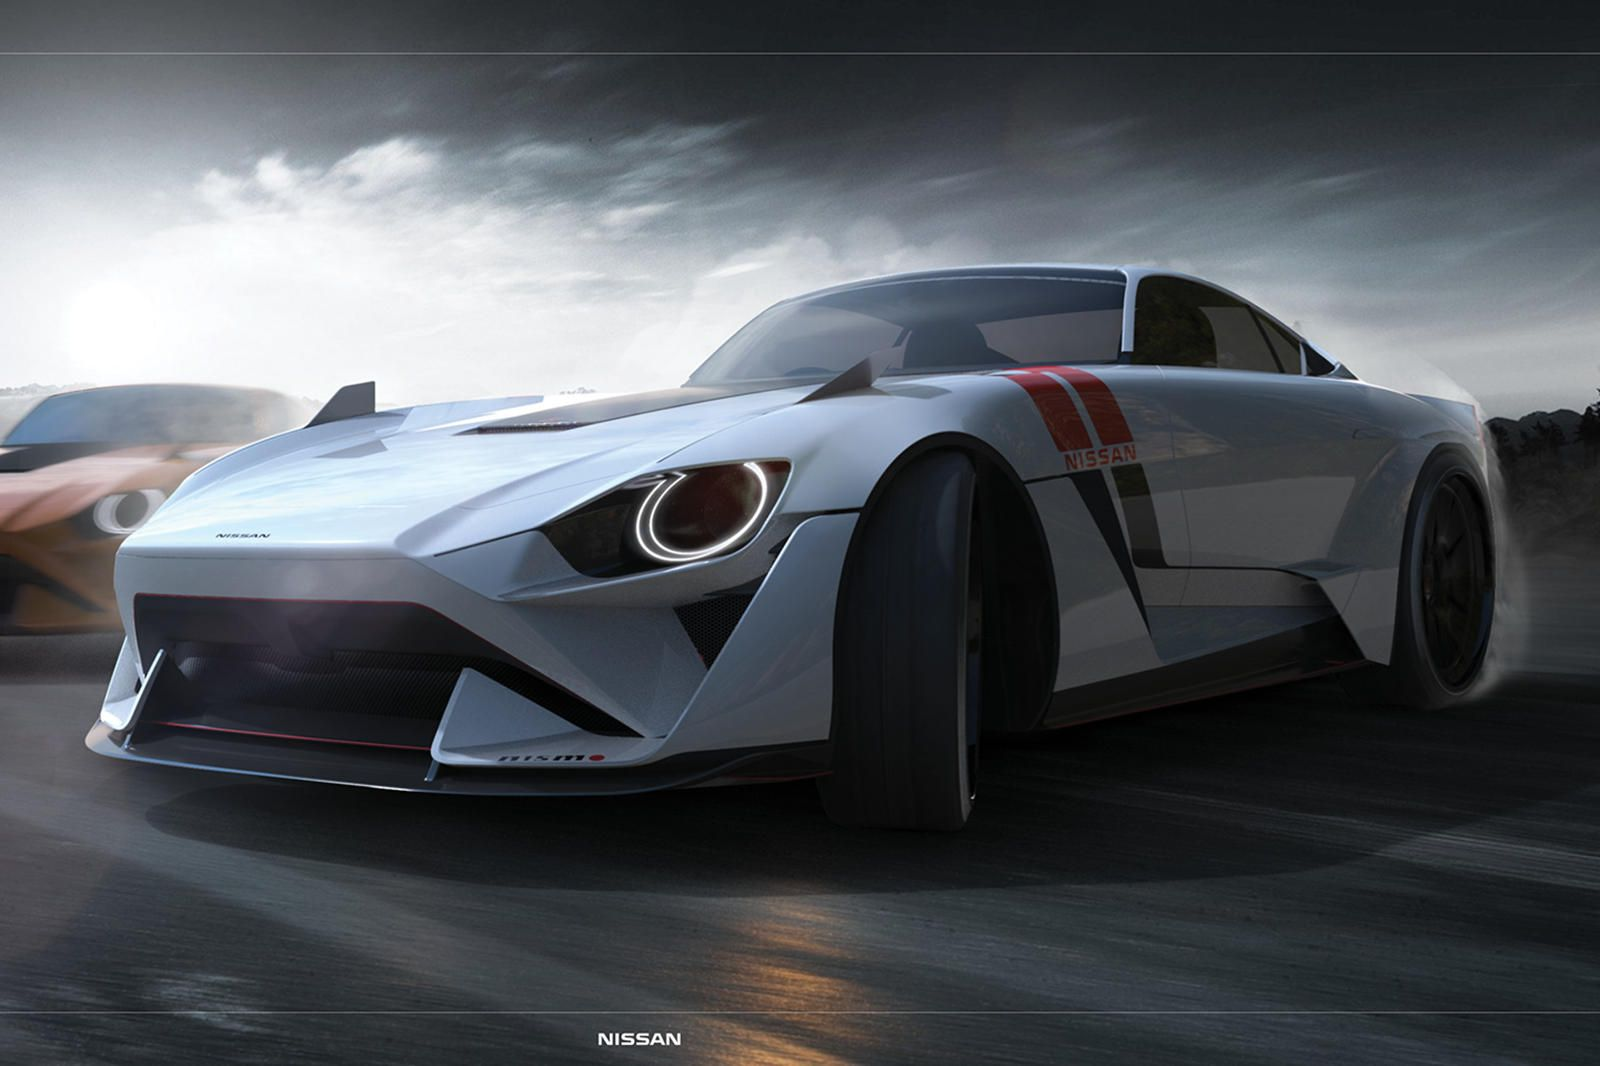 We Hope The New Nissan Z Car Will Look This Good In 2020 Nissan Z Nissan Z Cars New Nissan Z